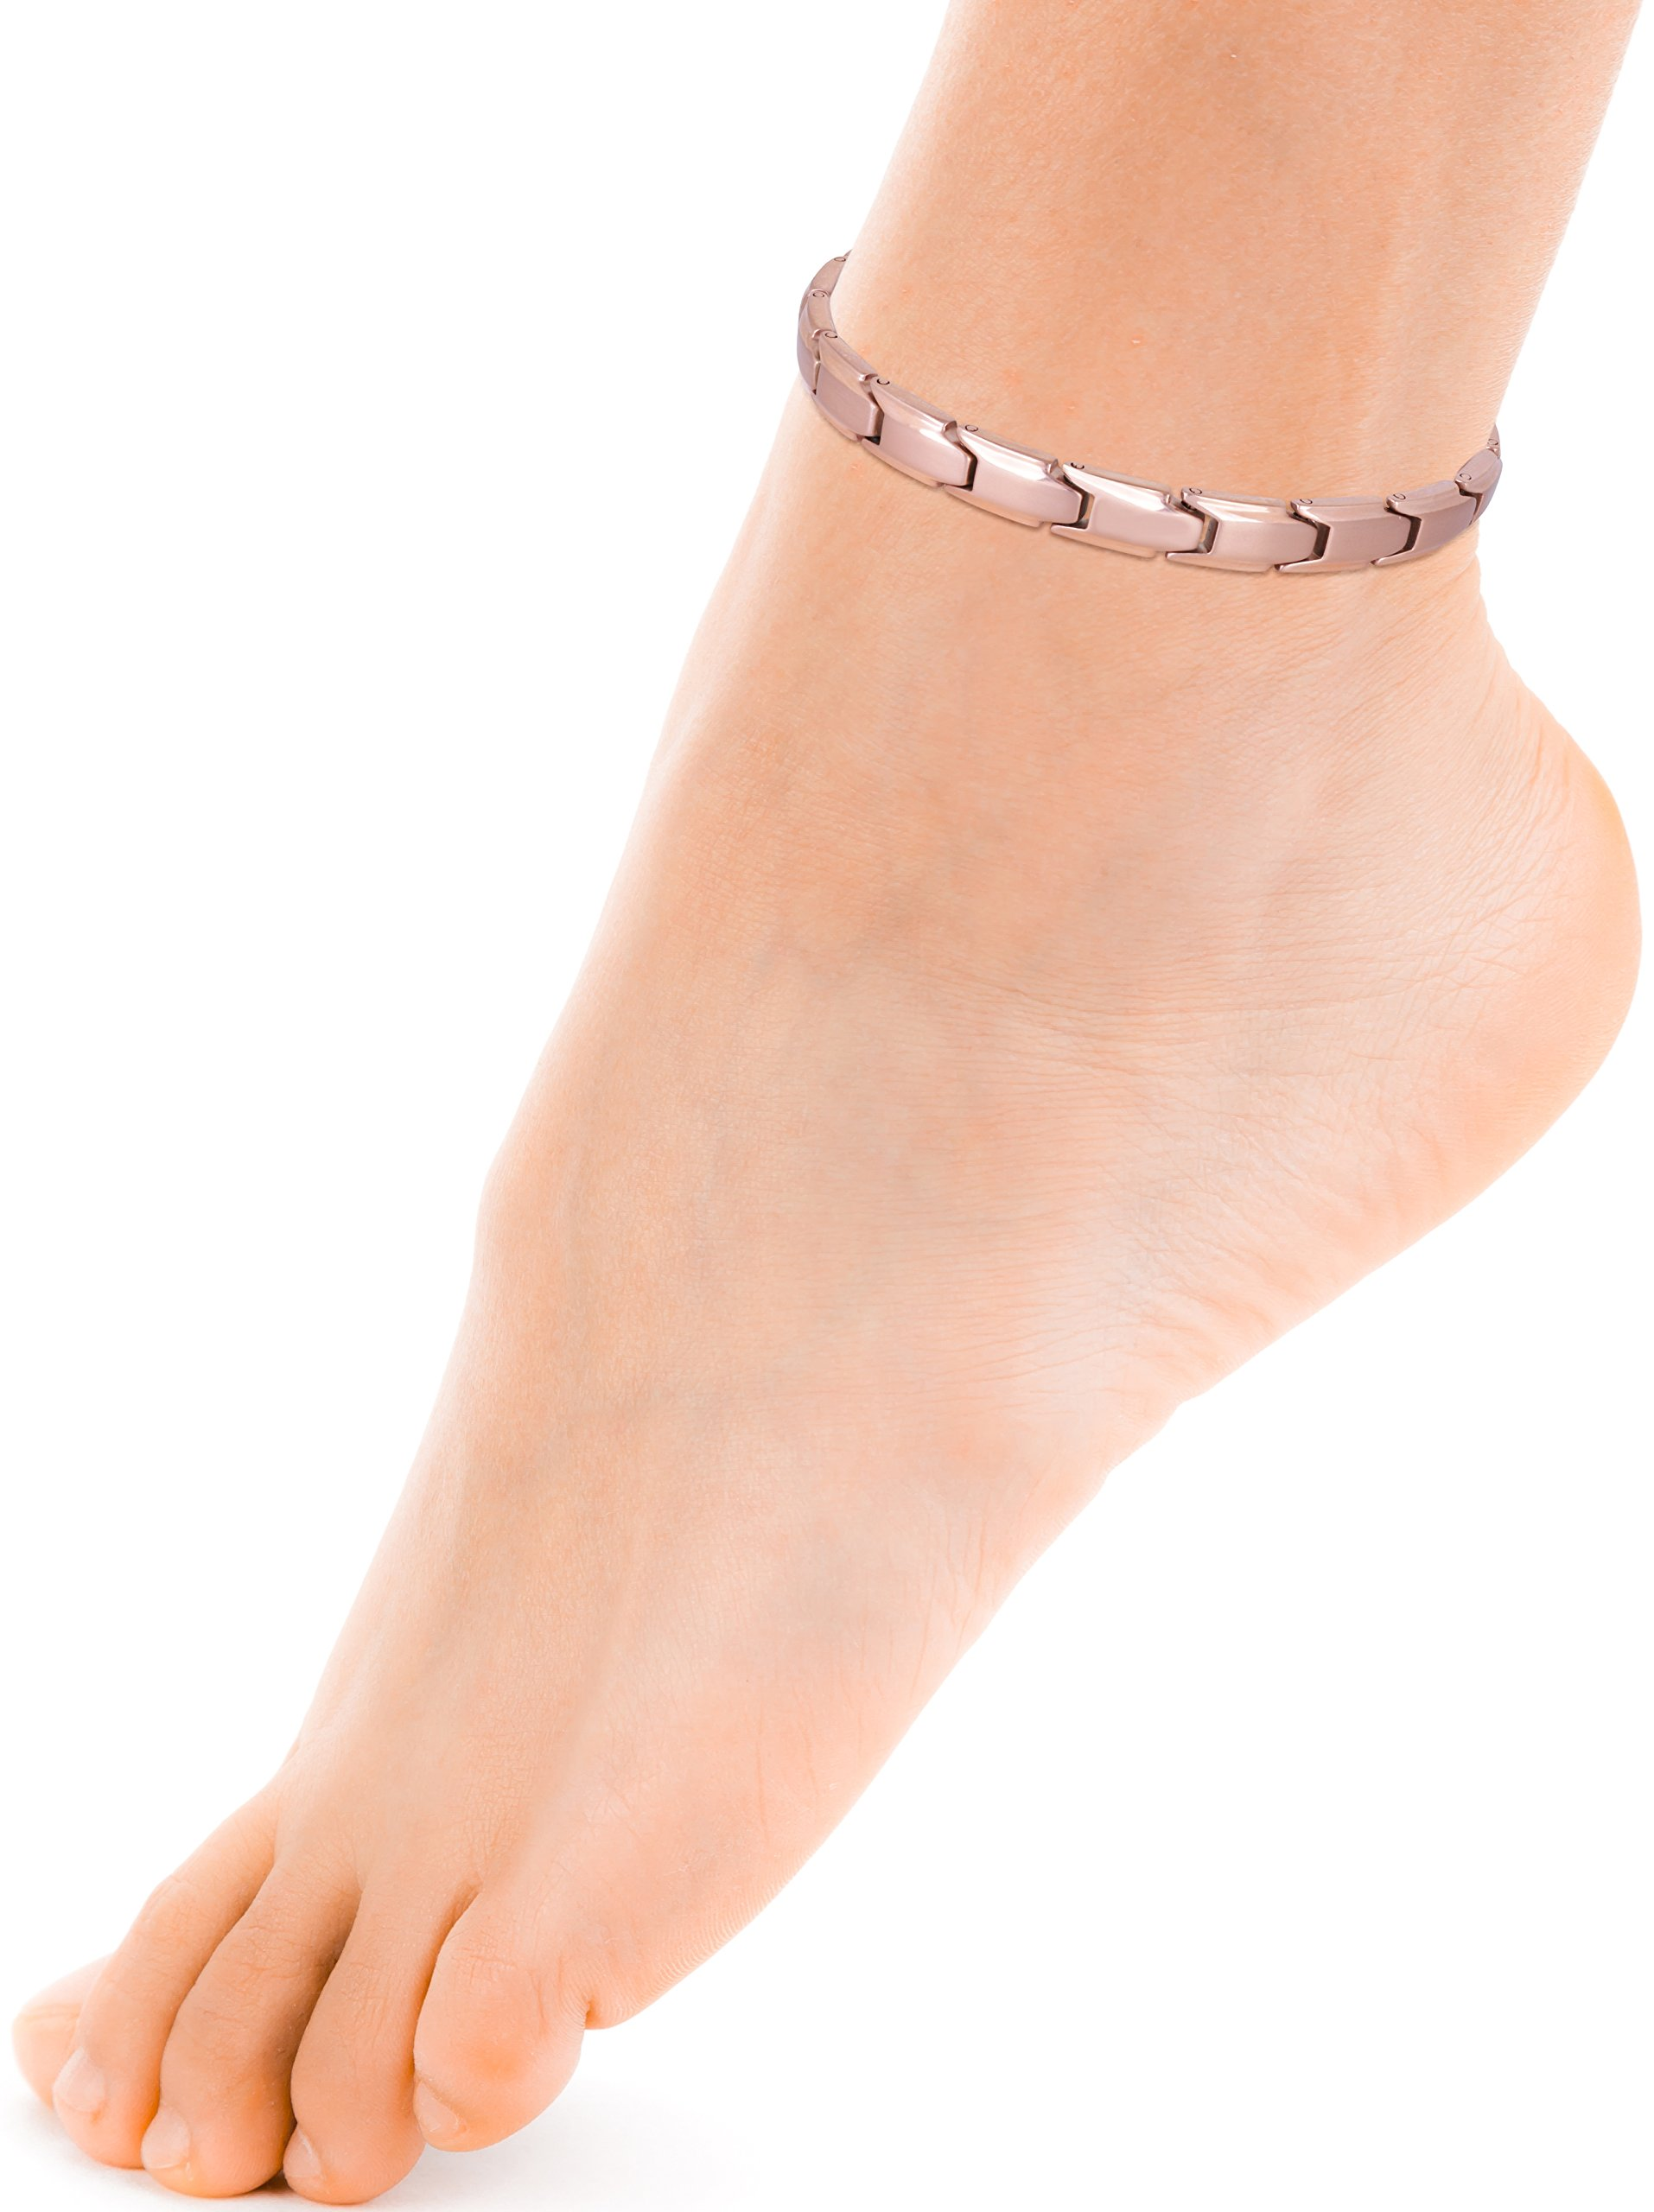 malaysia ladies in online silvertone n girls where product rathi jewelry anklets anklet bahana urban to fashion buy indie women accessories oxidised kl for